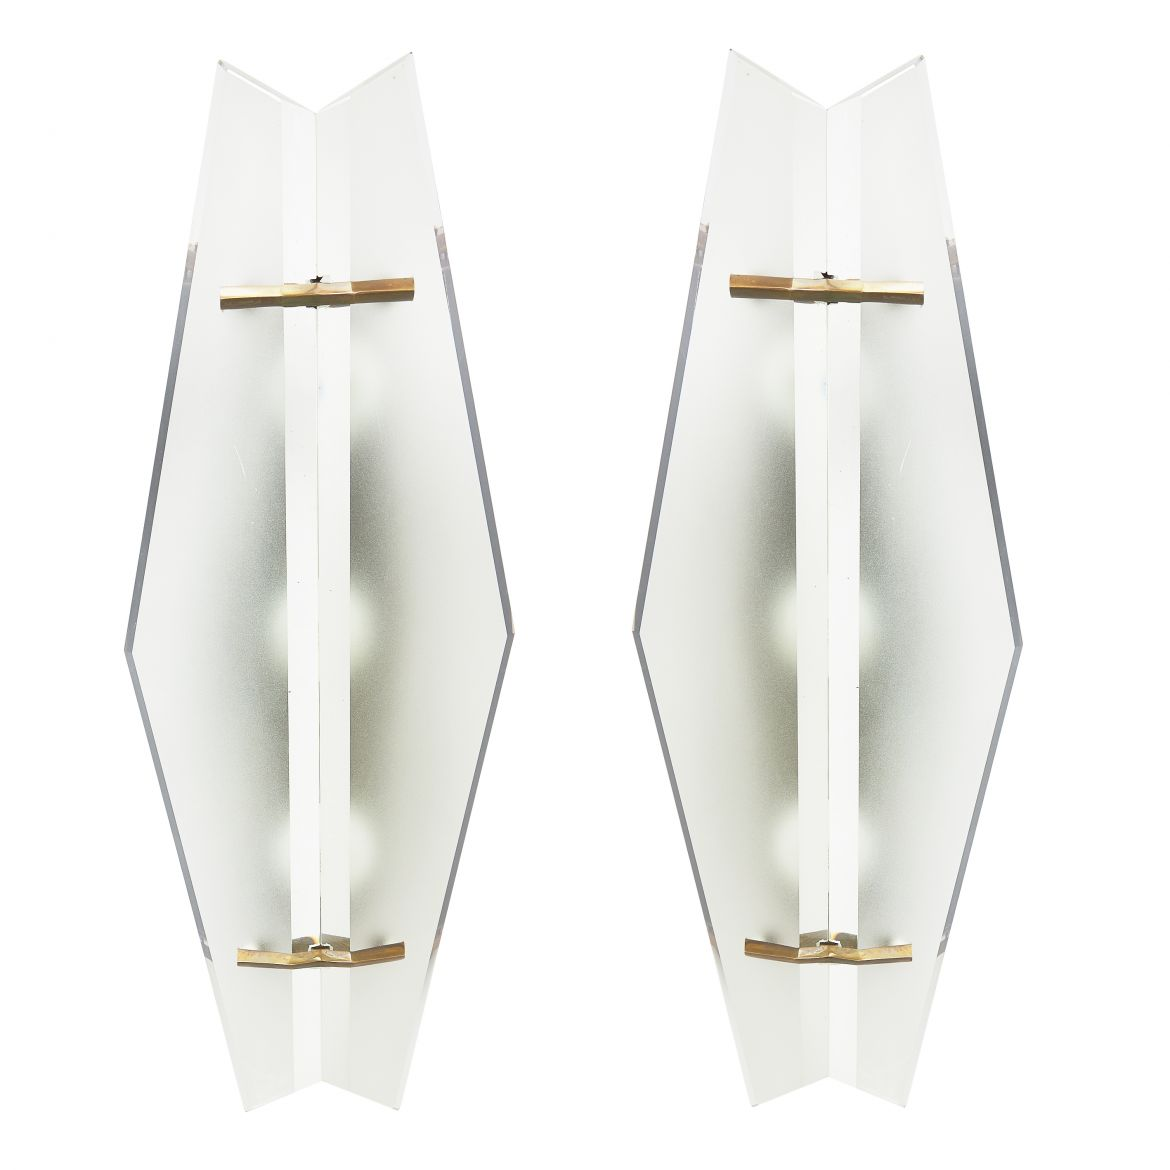 Max Ingrand Design Fontana Arte Sconces